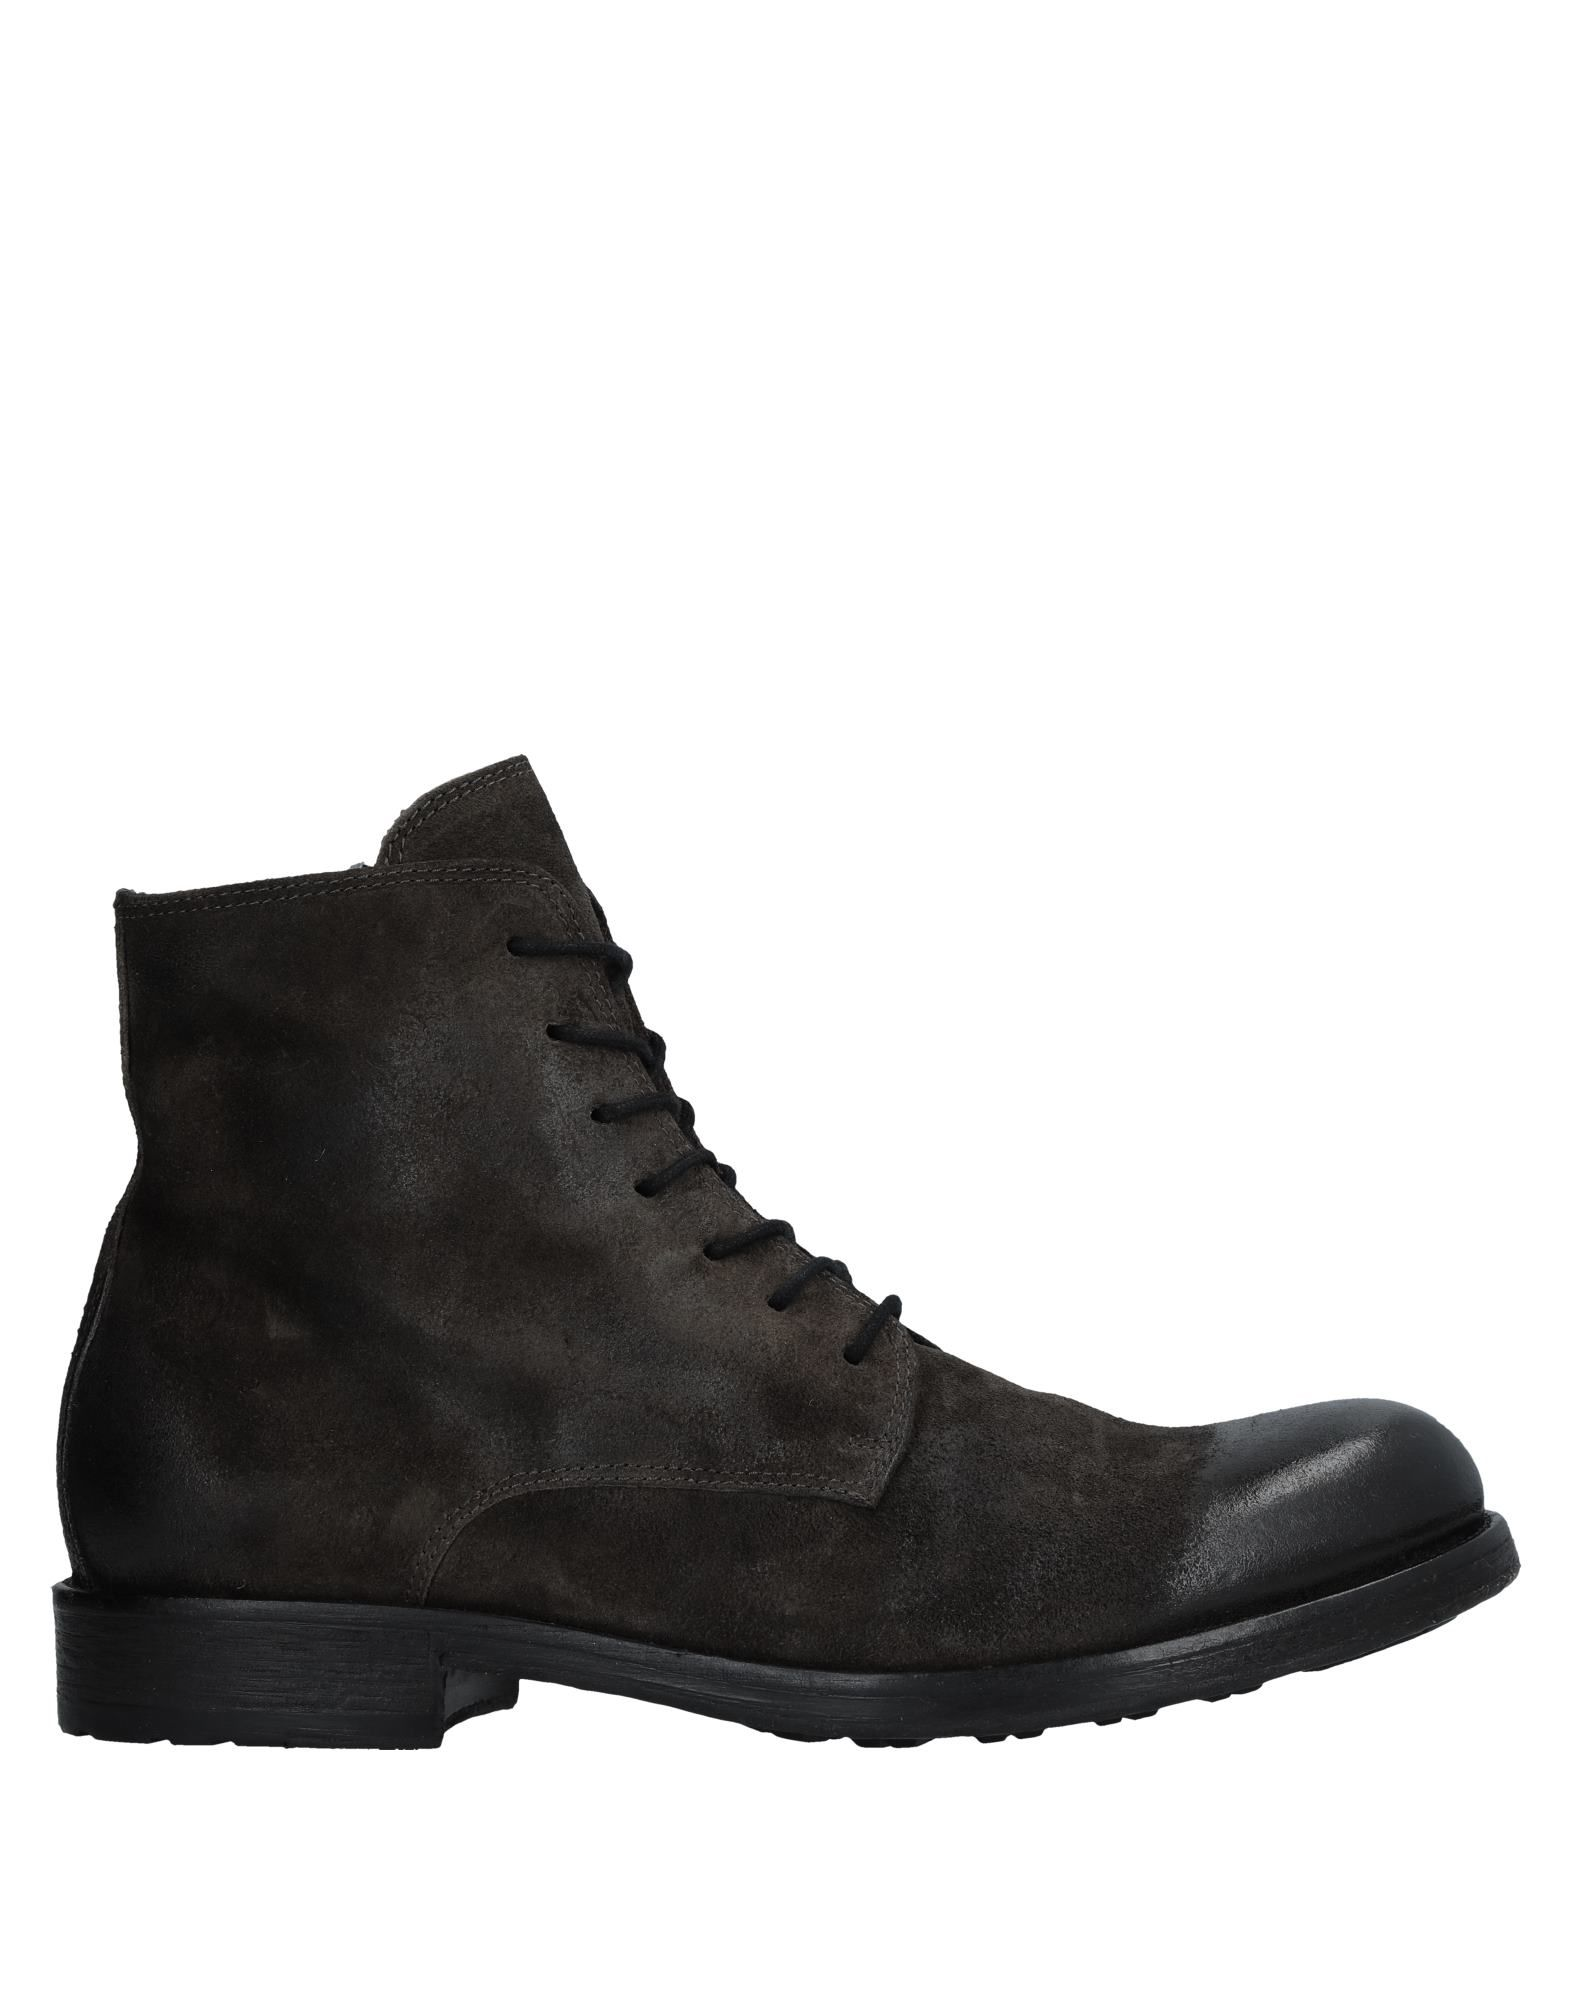 HUNDRED 100 Boots in Military Green